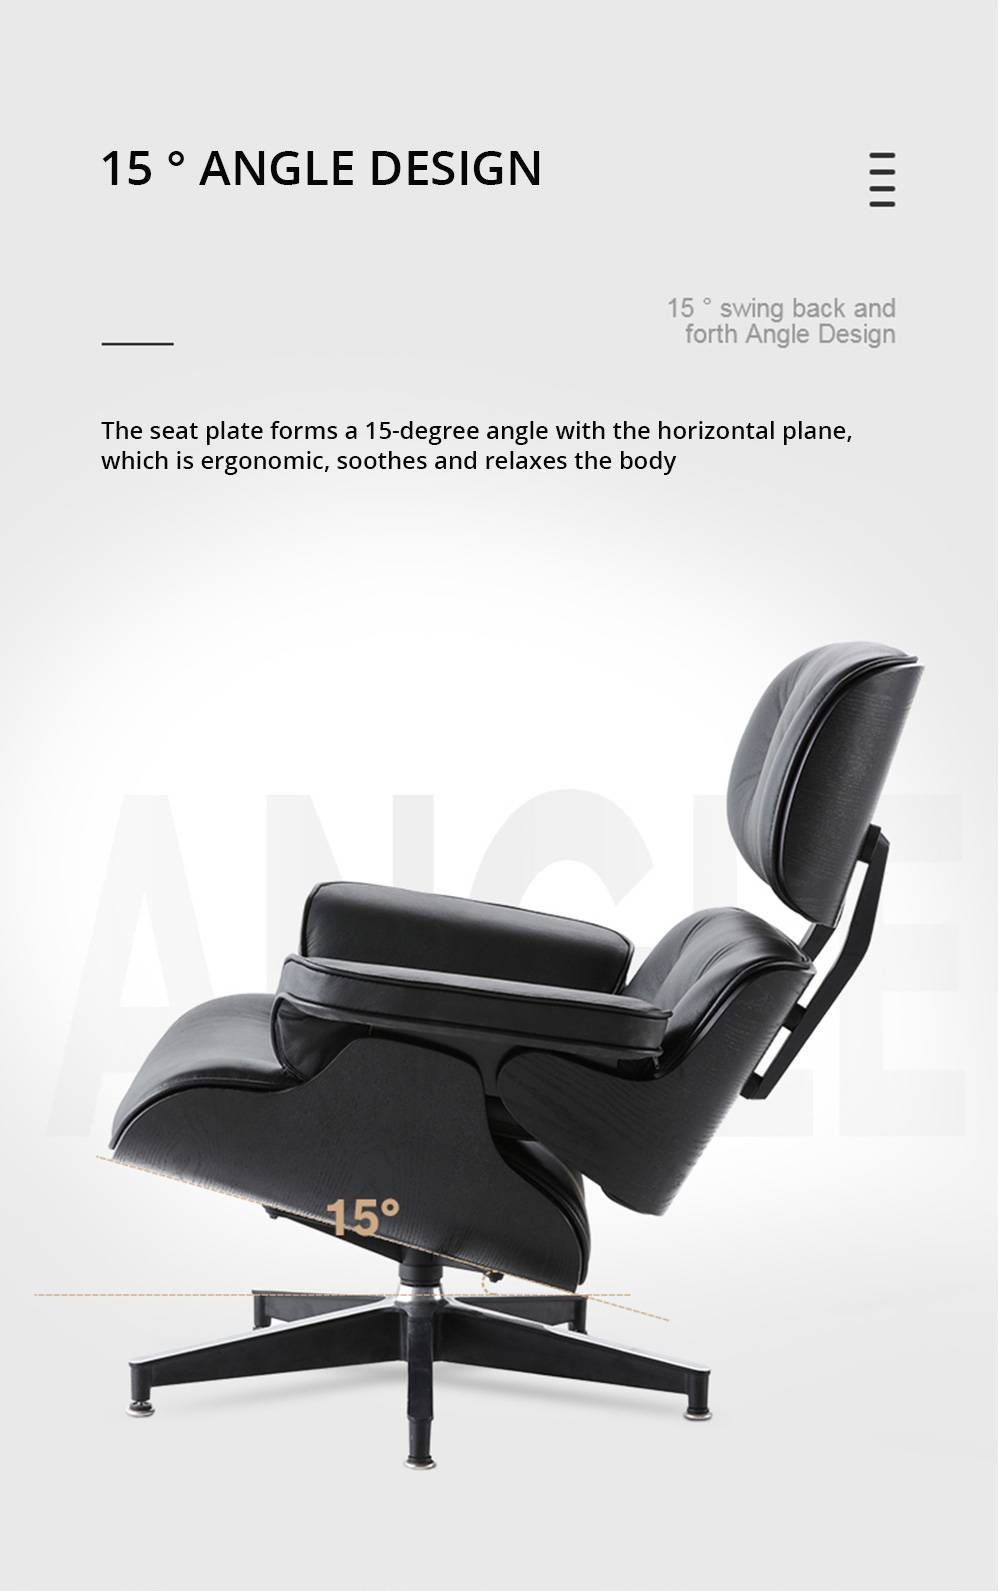 Makibes TY303 Lounge Chair With Pedal Seat Adjustable Rotatable Leather Chair For Office Home - Black